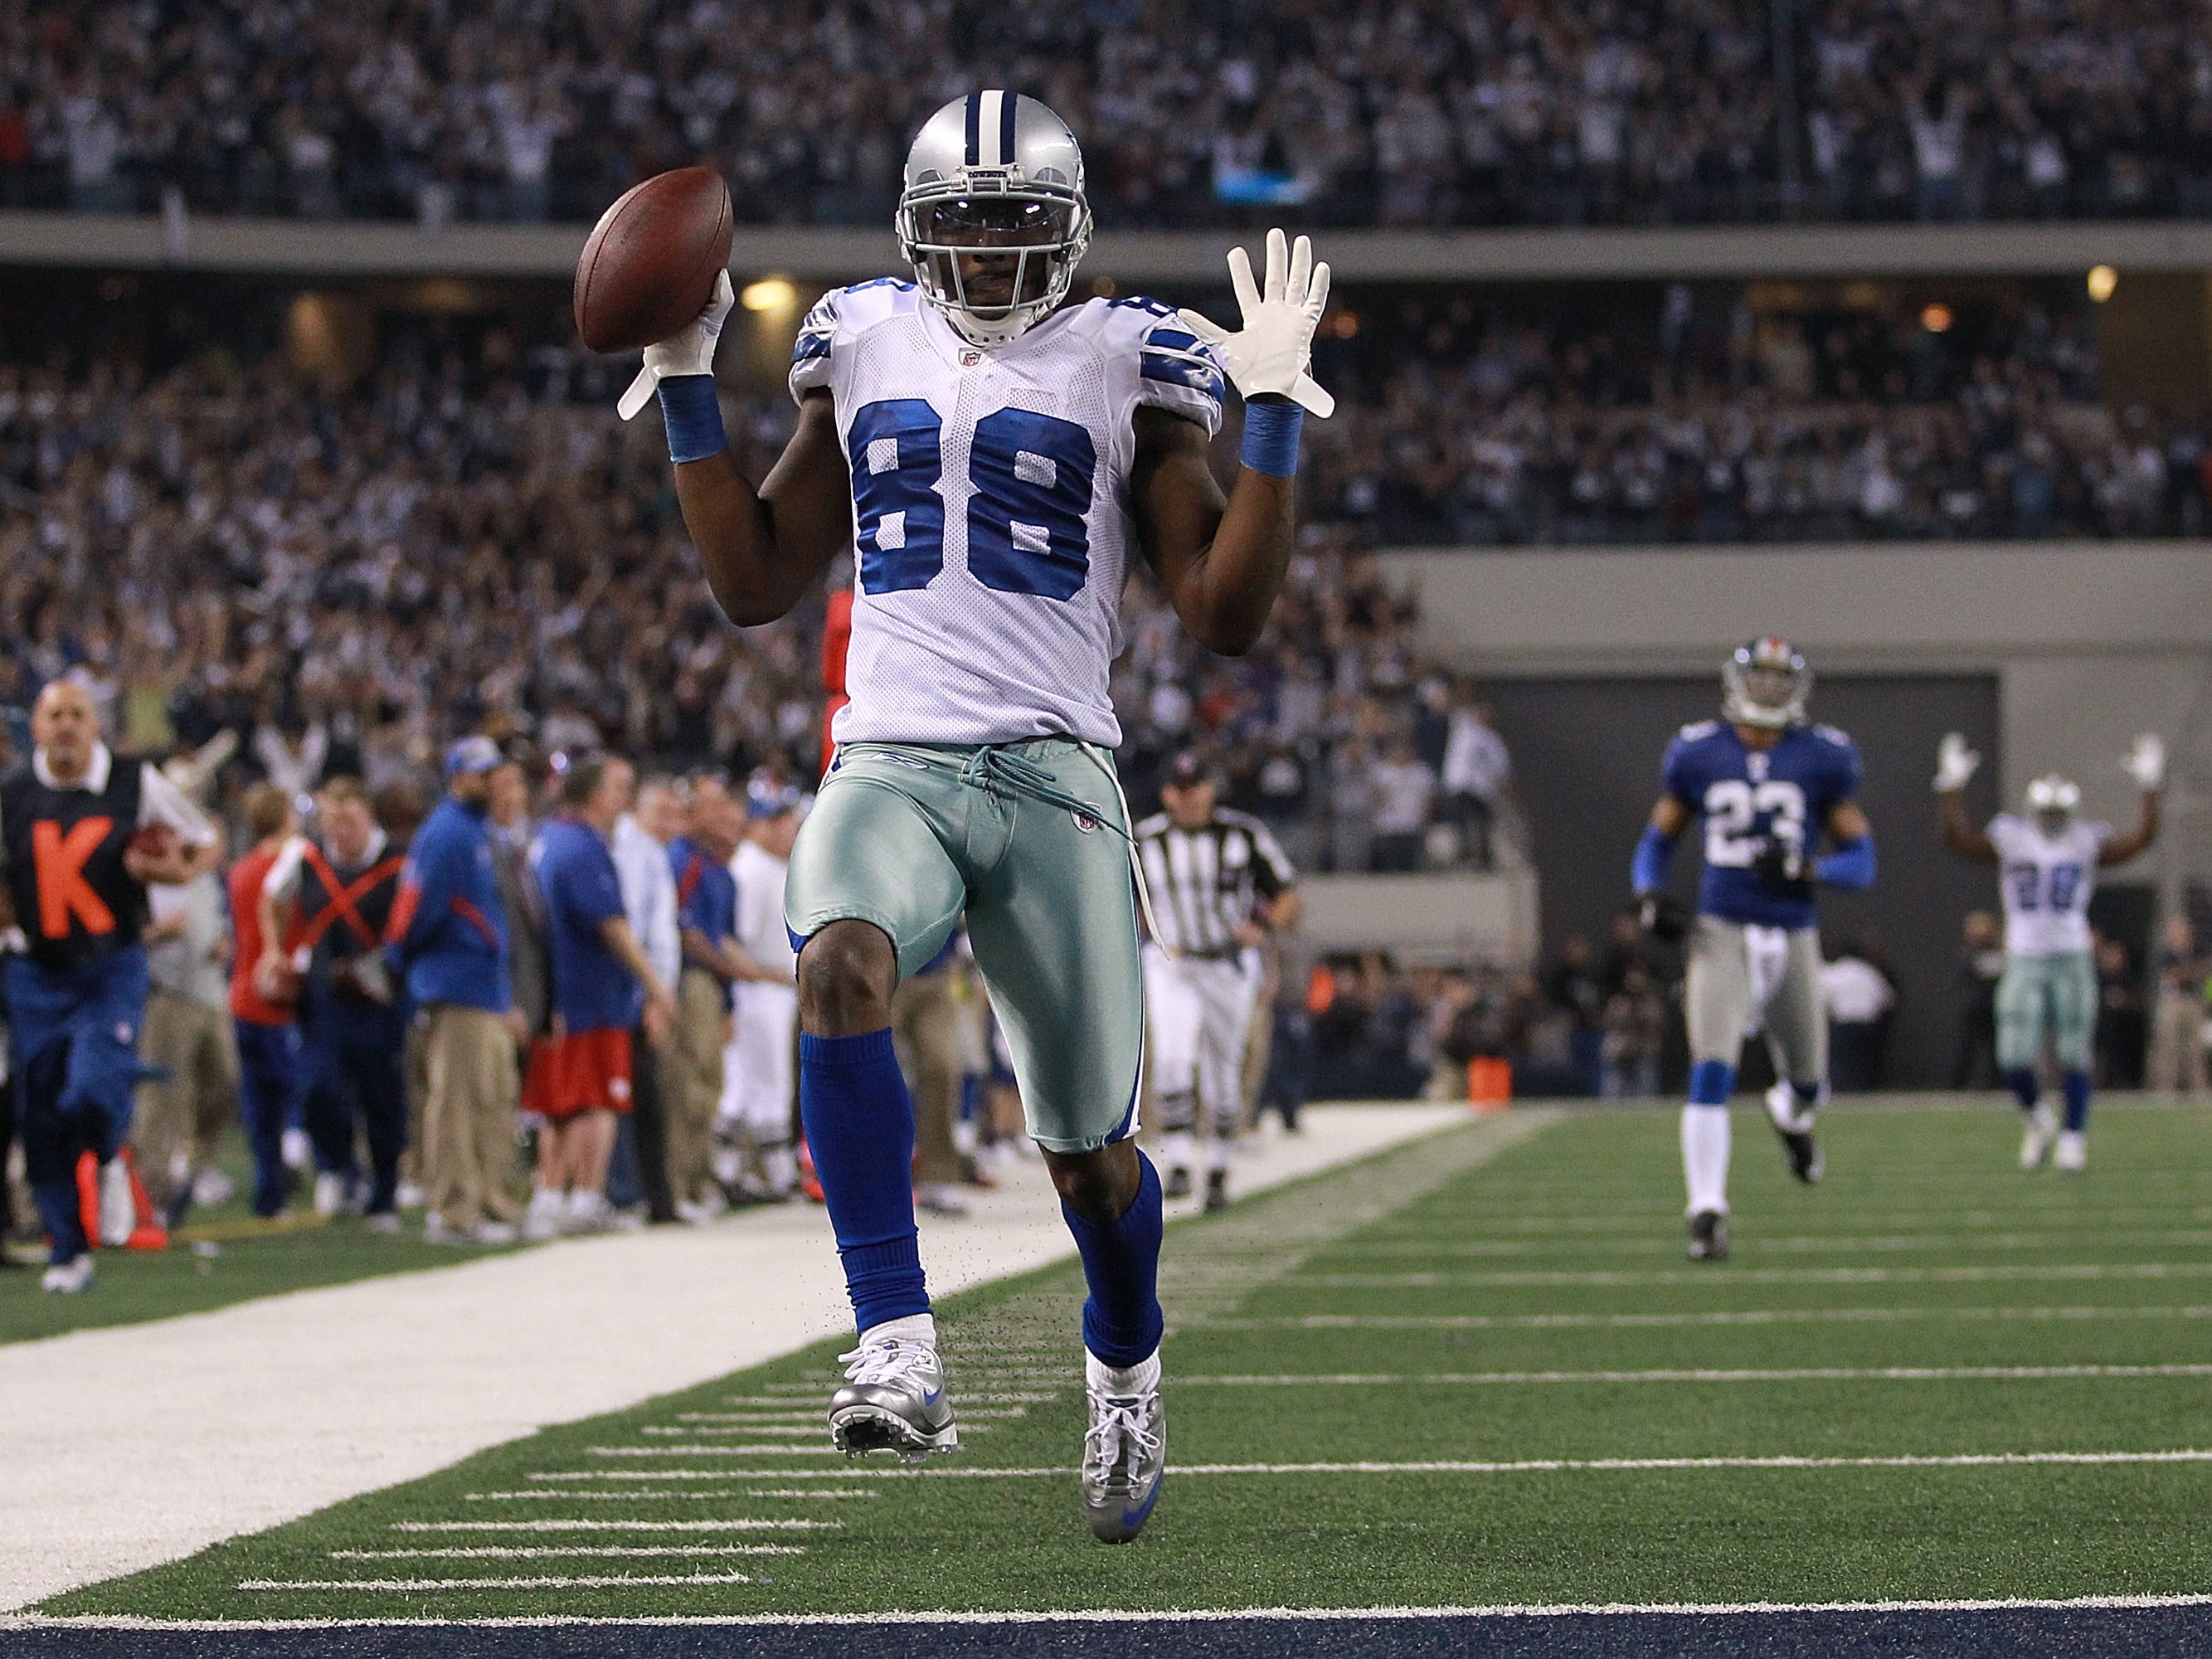 Dez Bryant scores a touchdown against the New York Giants at Cowboys Stadium in 2011.